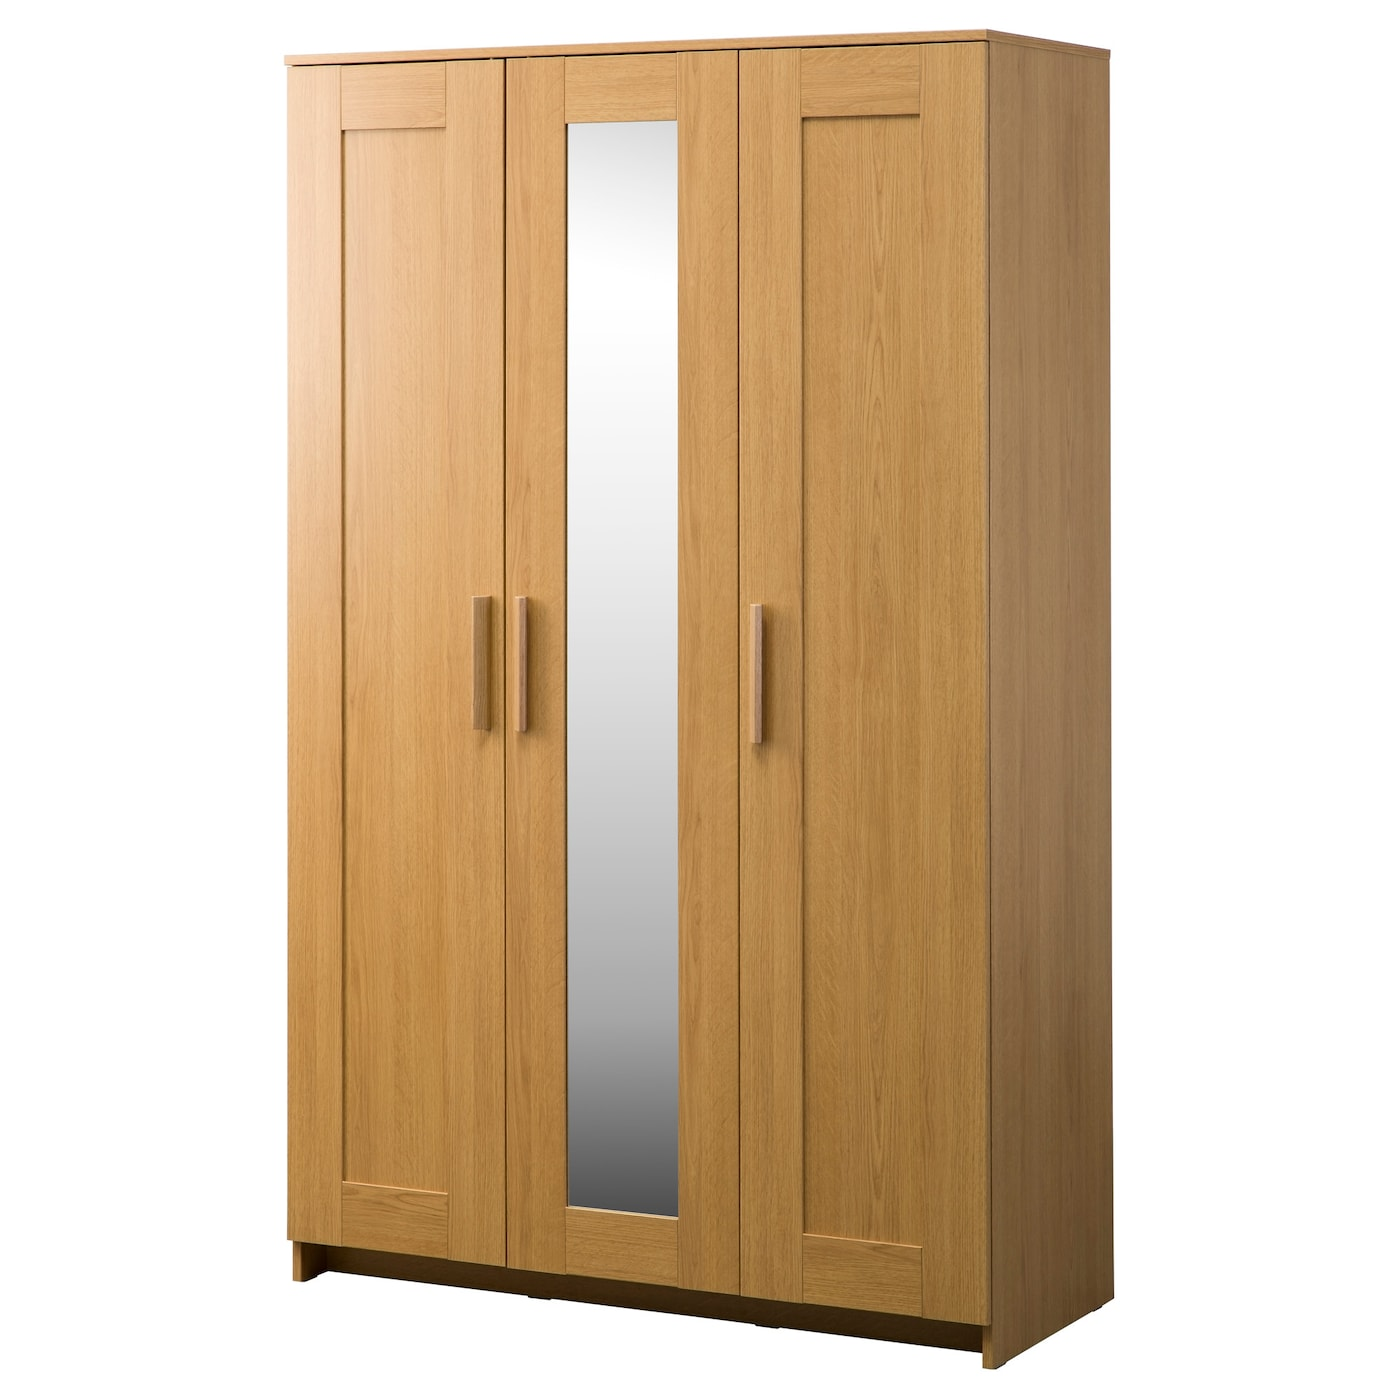 BRIMNES Wardrobe With Doors Oak Effect X Cm IKEA - Ikea wardrobe